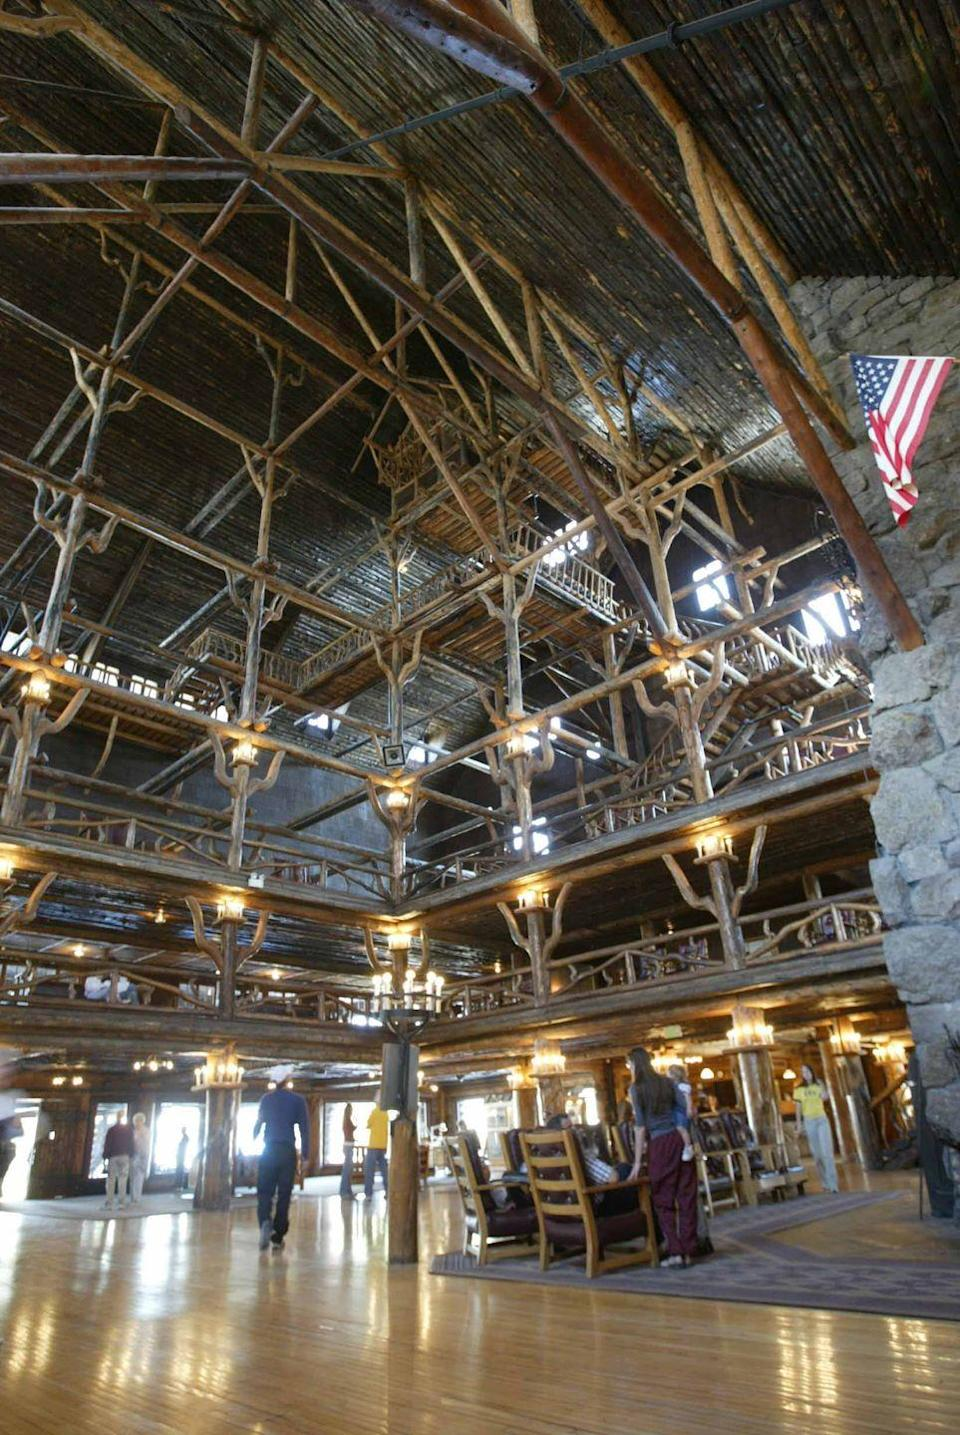 "<p>First opened in the spring of 1904, <a href=""https://www.yellowstonenationalparklodges.com/lodgings/hotel/old-faithful-inn/"" rel=""nofollow noopener"" target=""_blank"" data-ylk=""slk:Old Faithful Inn"" class=""link rapid-noclick-resp"">Old Faithful Inn</a> was the first of the great park lodges built in the American west. It's most iconic design feature, the Old House that contains the seven-story high lobby atrium supported by a log pole interior framework, was restored in 2004 as part of the lodge's centennial celebration. Today, it's one of the few remaining log hotels in the United States and remains the largest log hotel ever built. Old Faithfull Inn was designated a national landmark in 1987 and is a member of Historic Hotels of America.</p>"